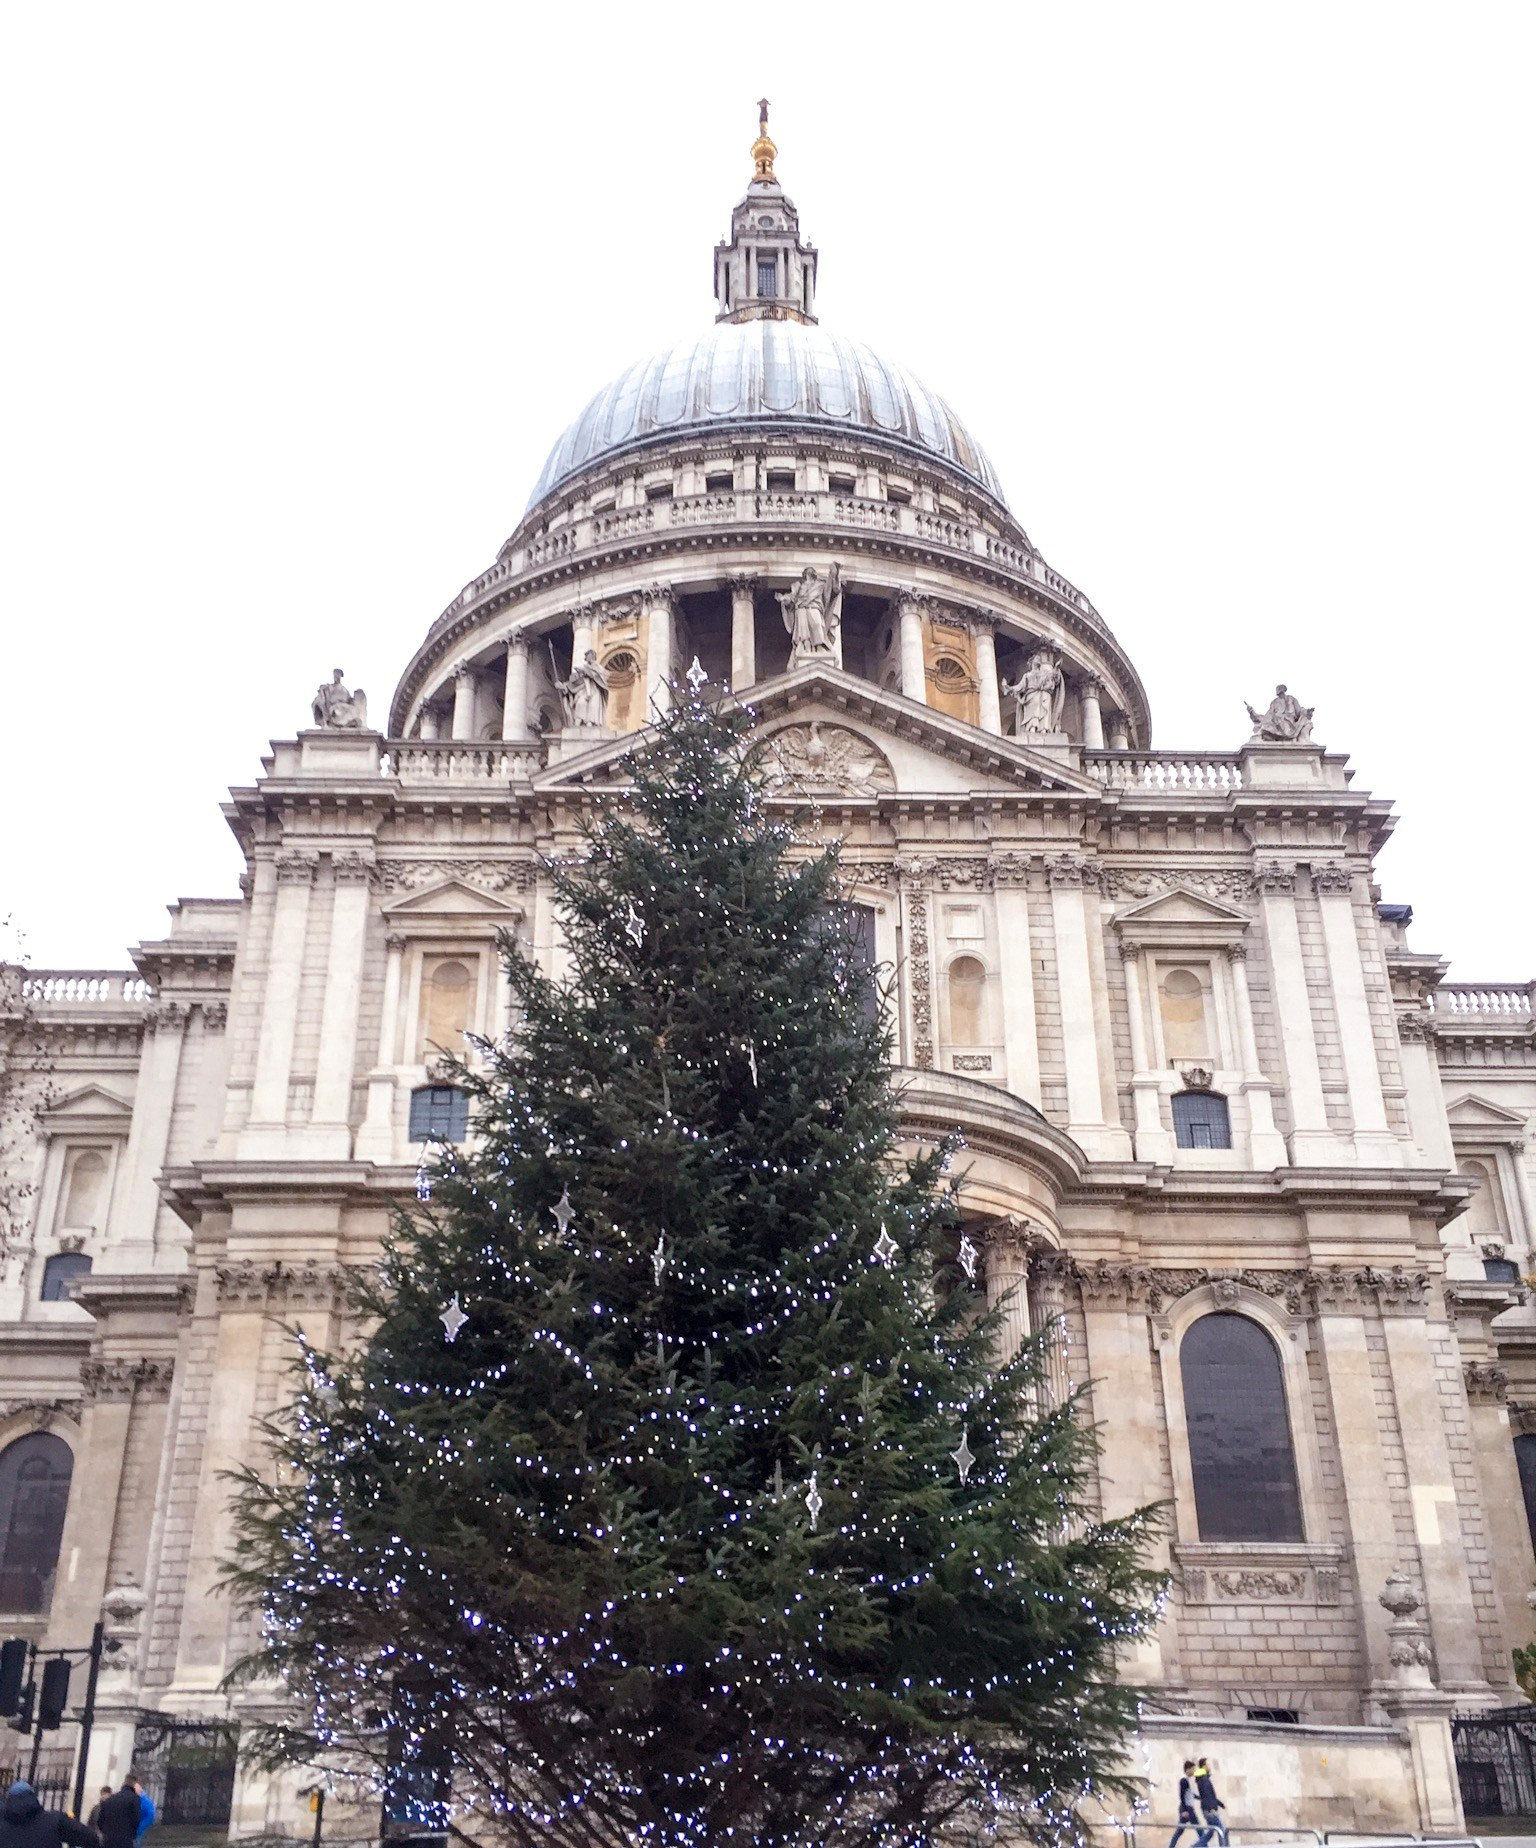 Christmas tree in front of St Pauls, London